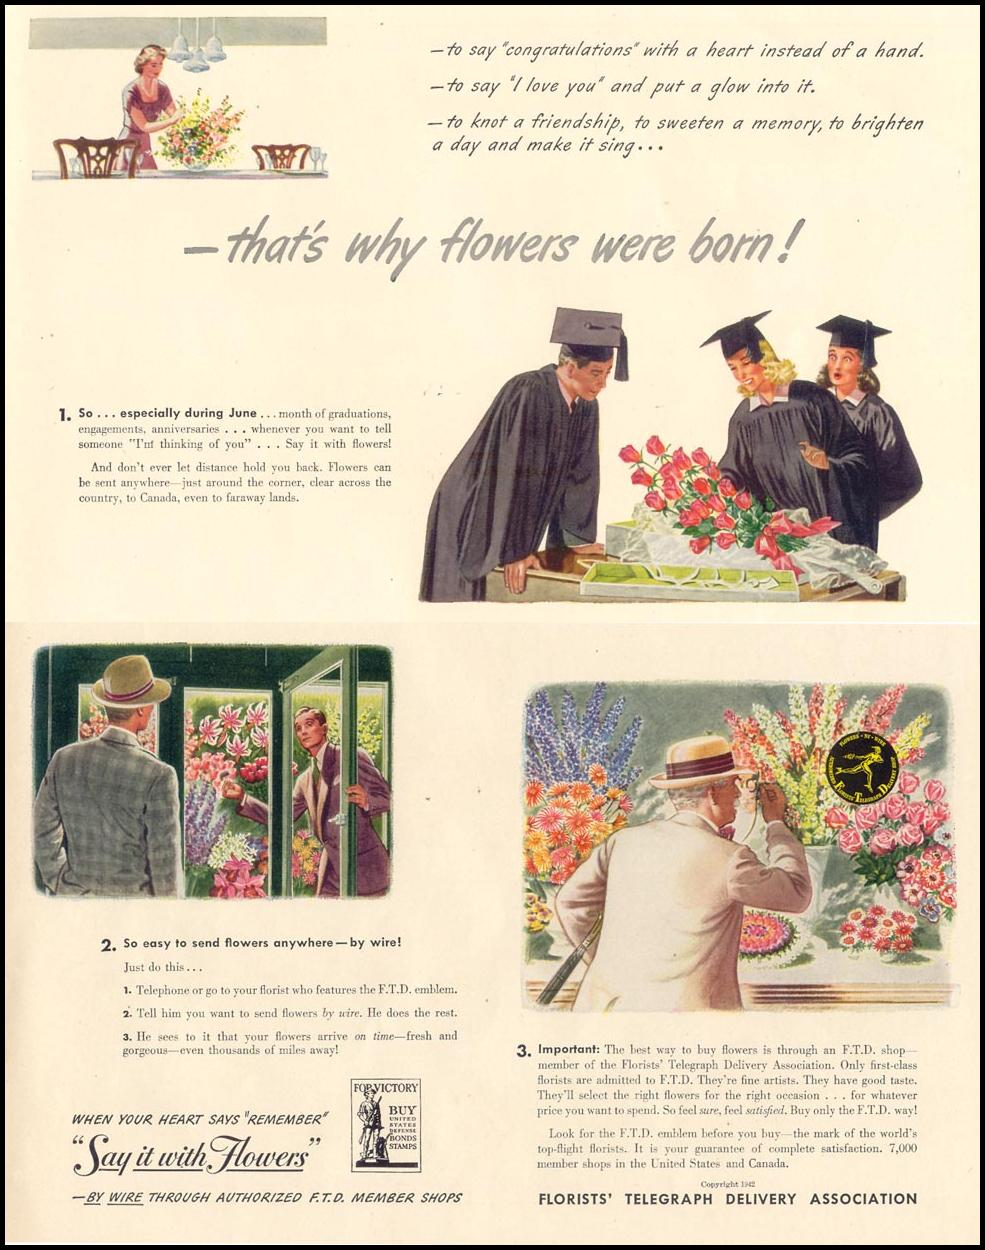 FLOWERS BY WIRE LIFE 06/01/1942